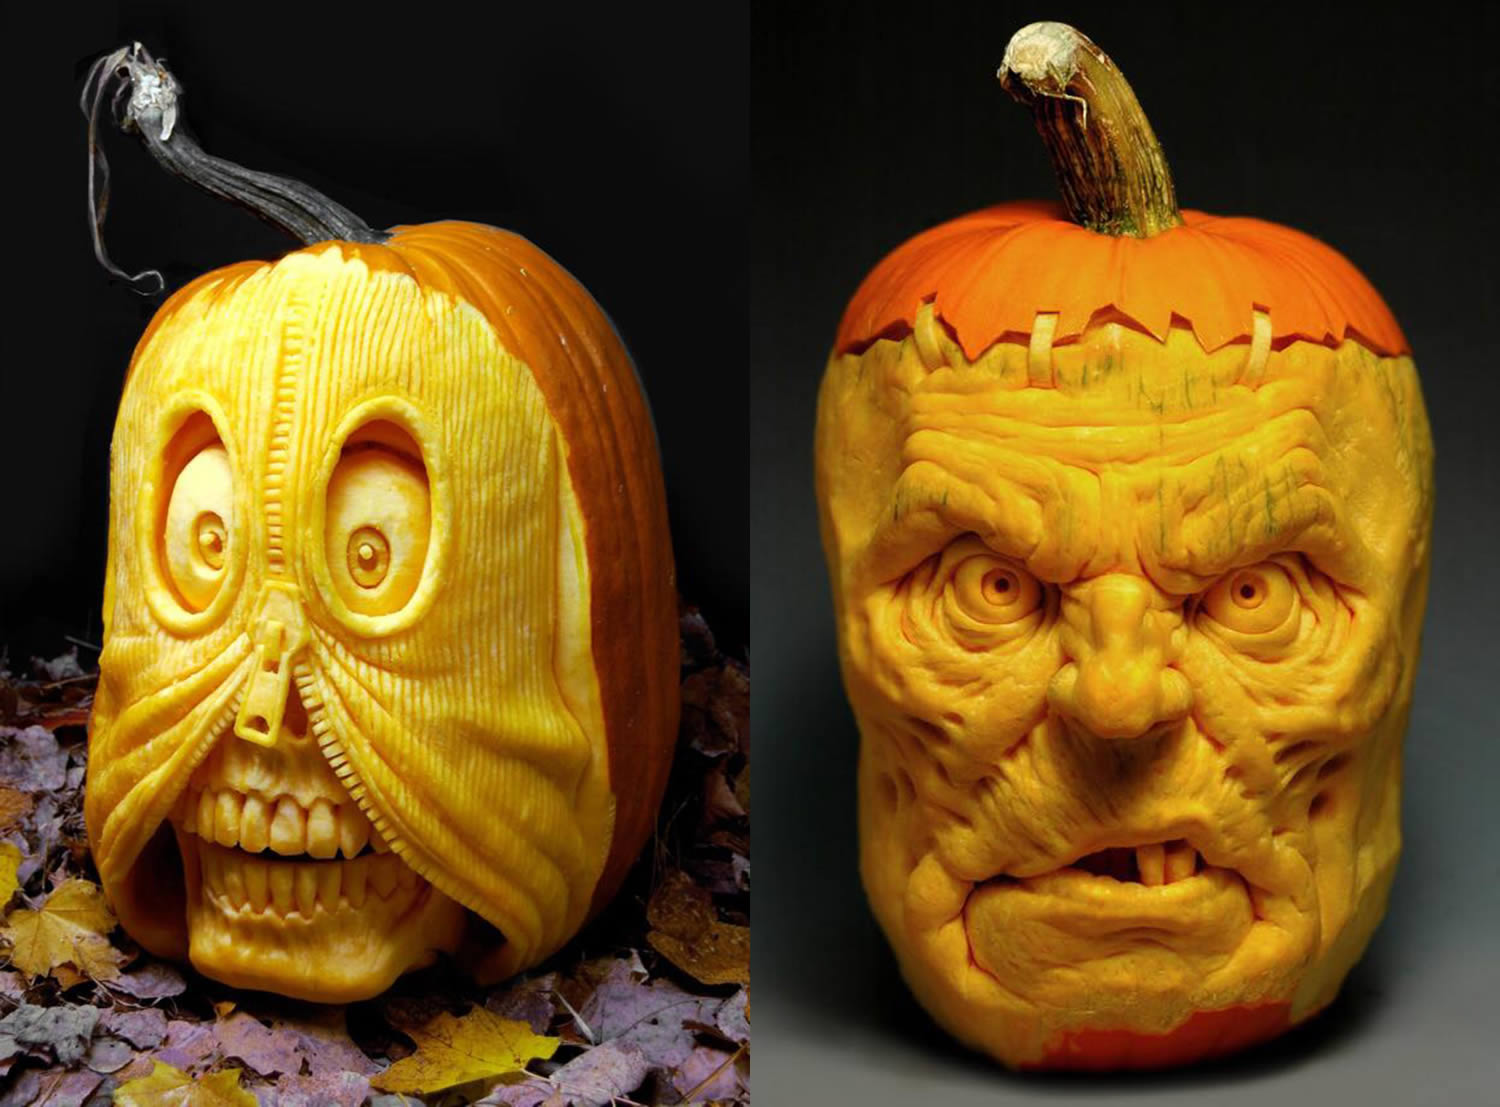 zipper face guy and frakenstein pumpkins